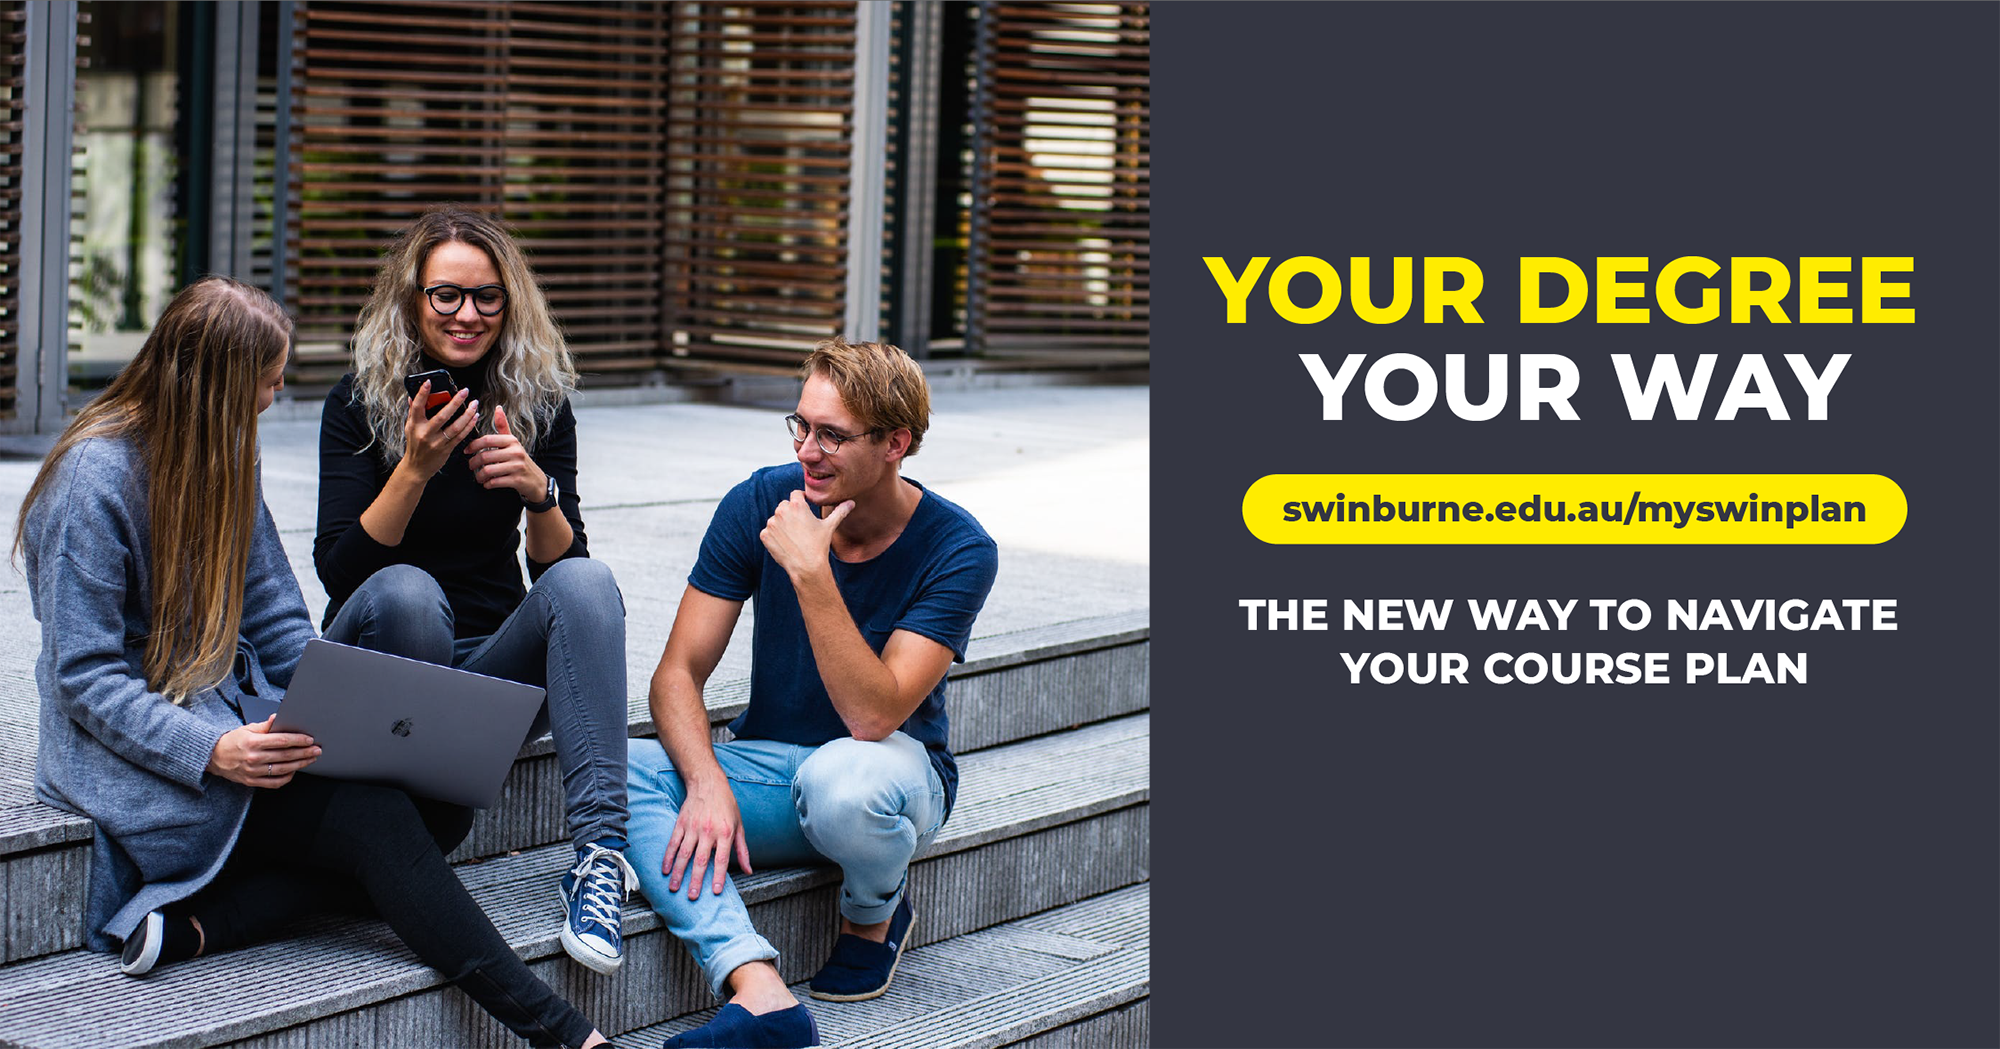 Ad showing students discussing their course plans at Swinburne University